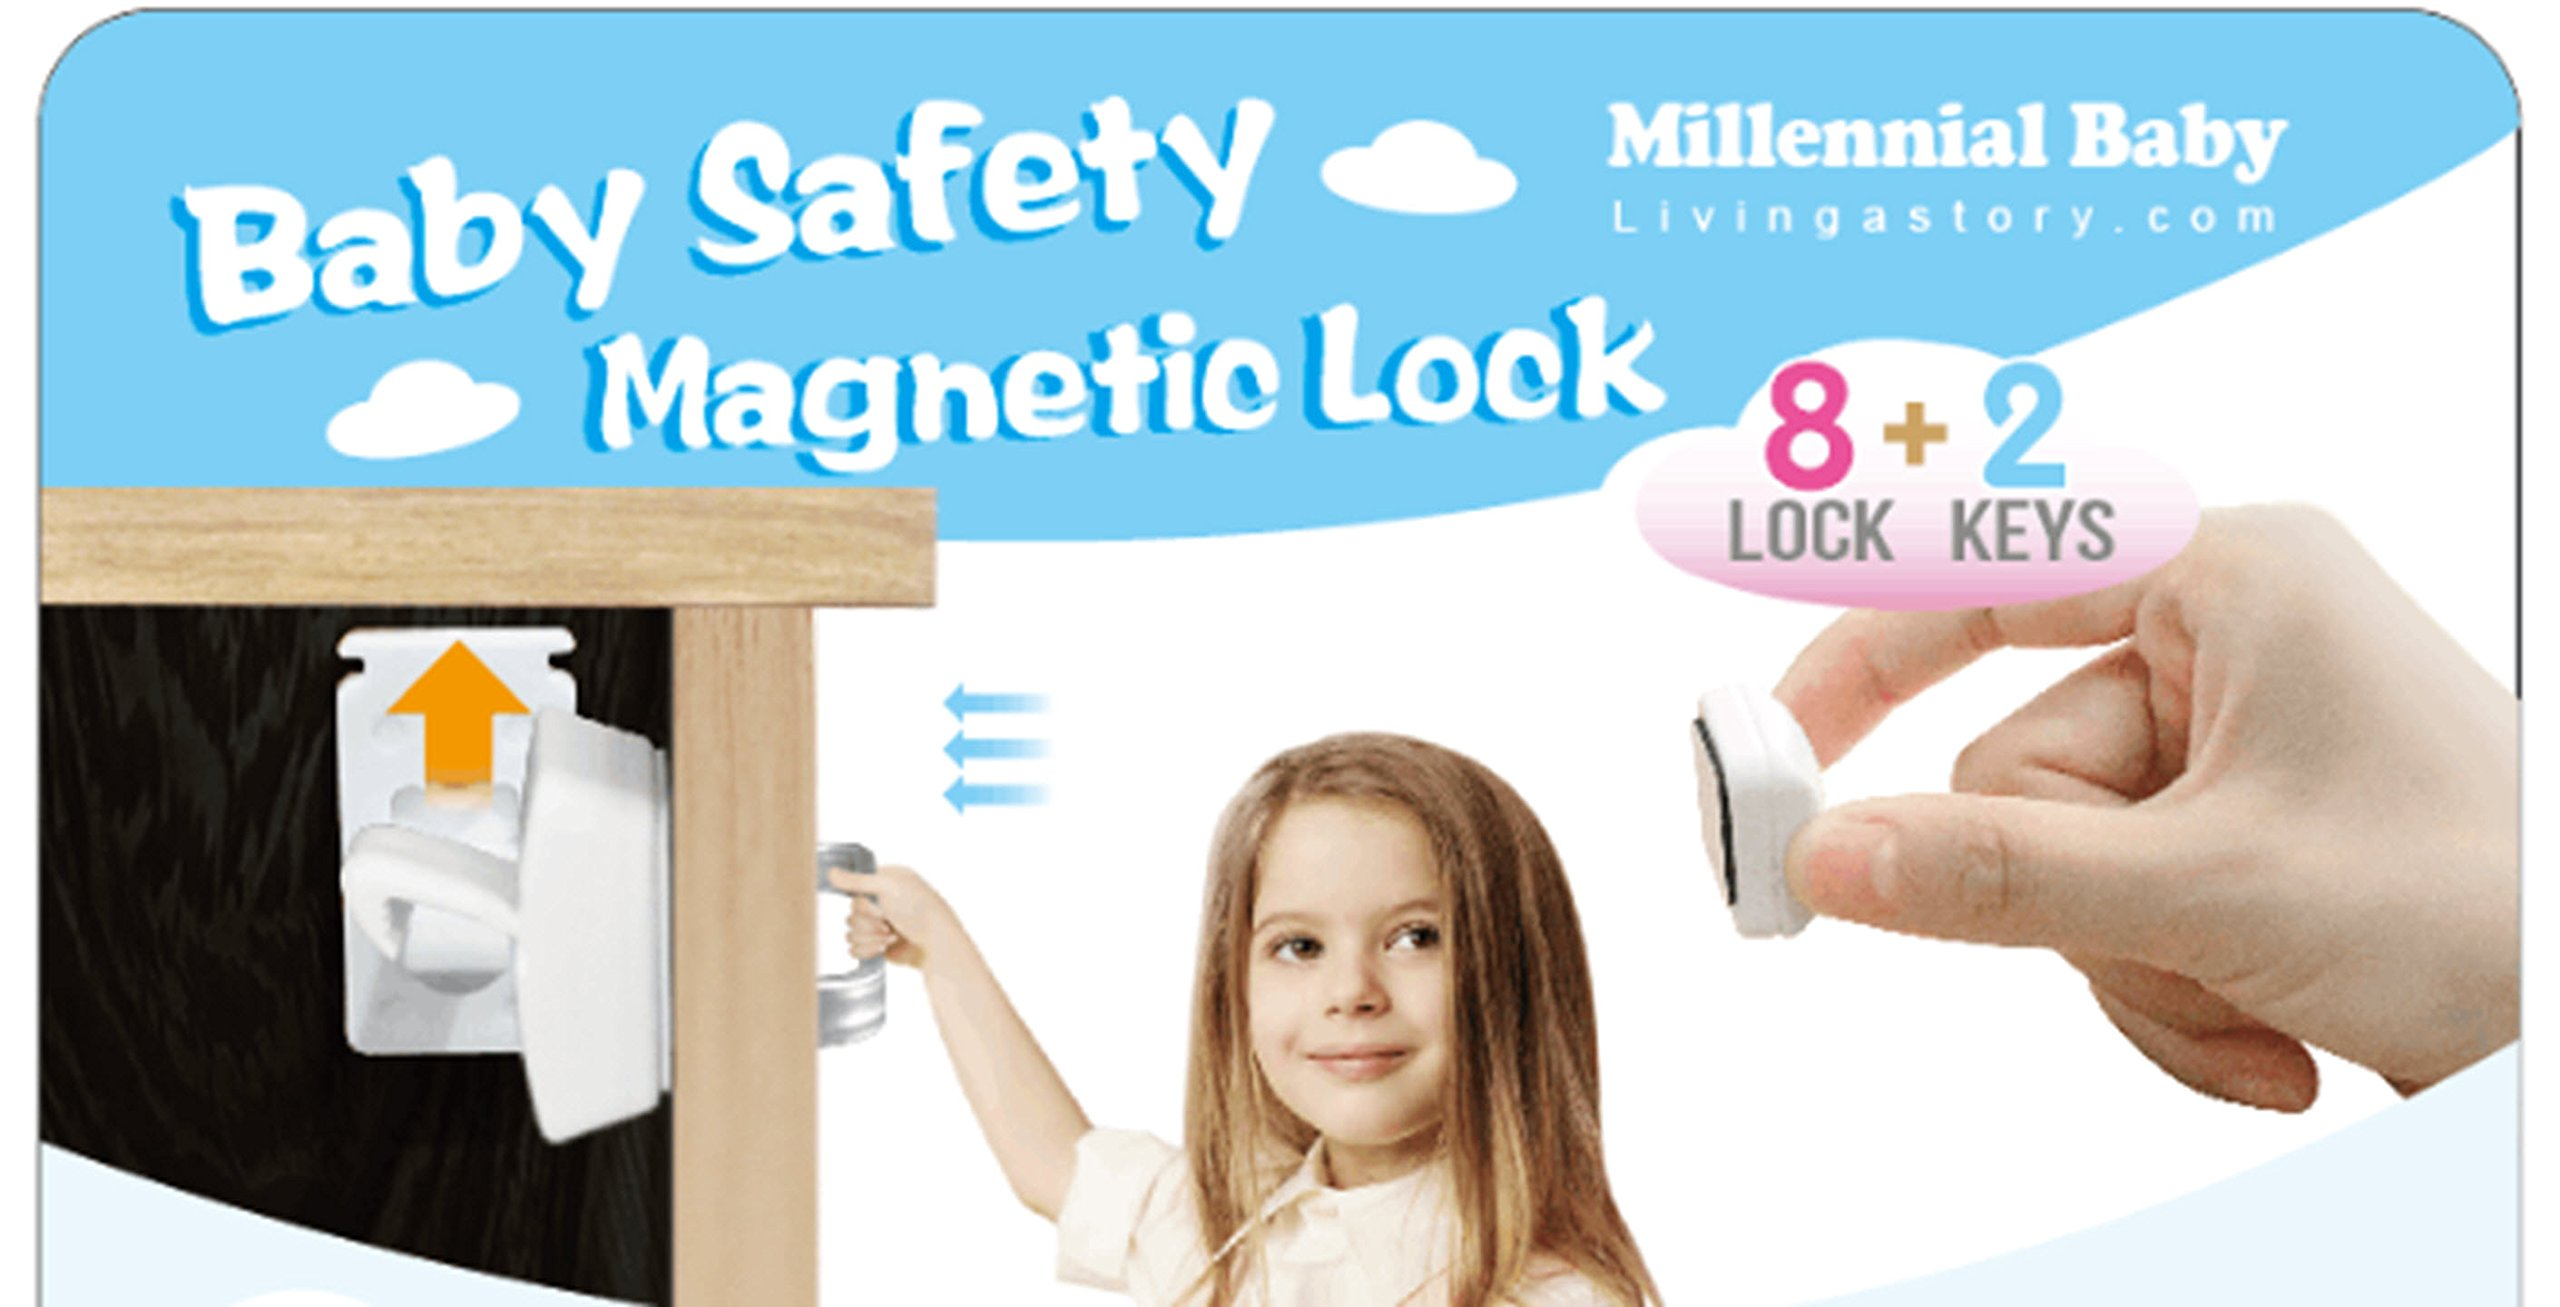 Baby proof magnetic cabinets locks- 8 kitchen cabinet drawers latches no screws without drilling 2 keys .Adhesive mag lock child proofing system. Hidden magnet catch for babies, infants, pet proof too